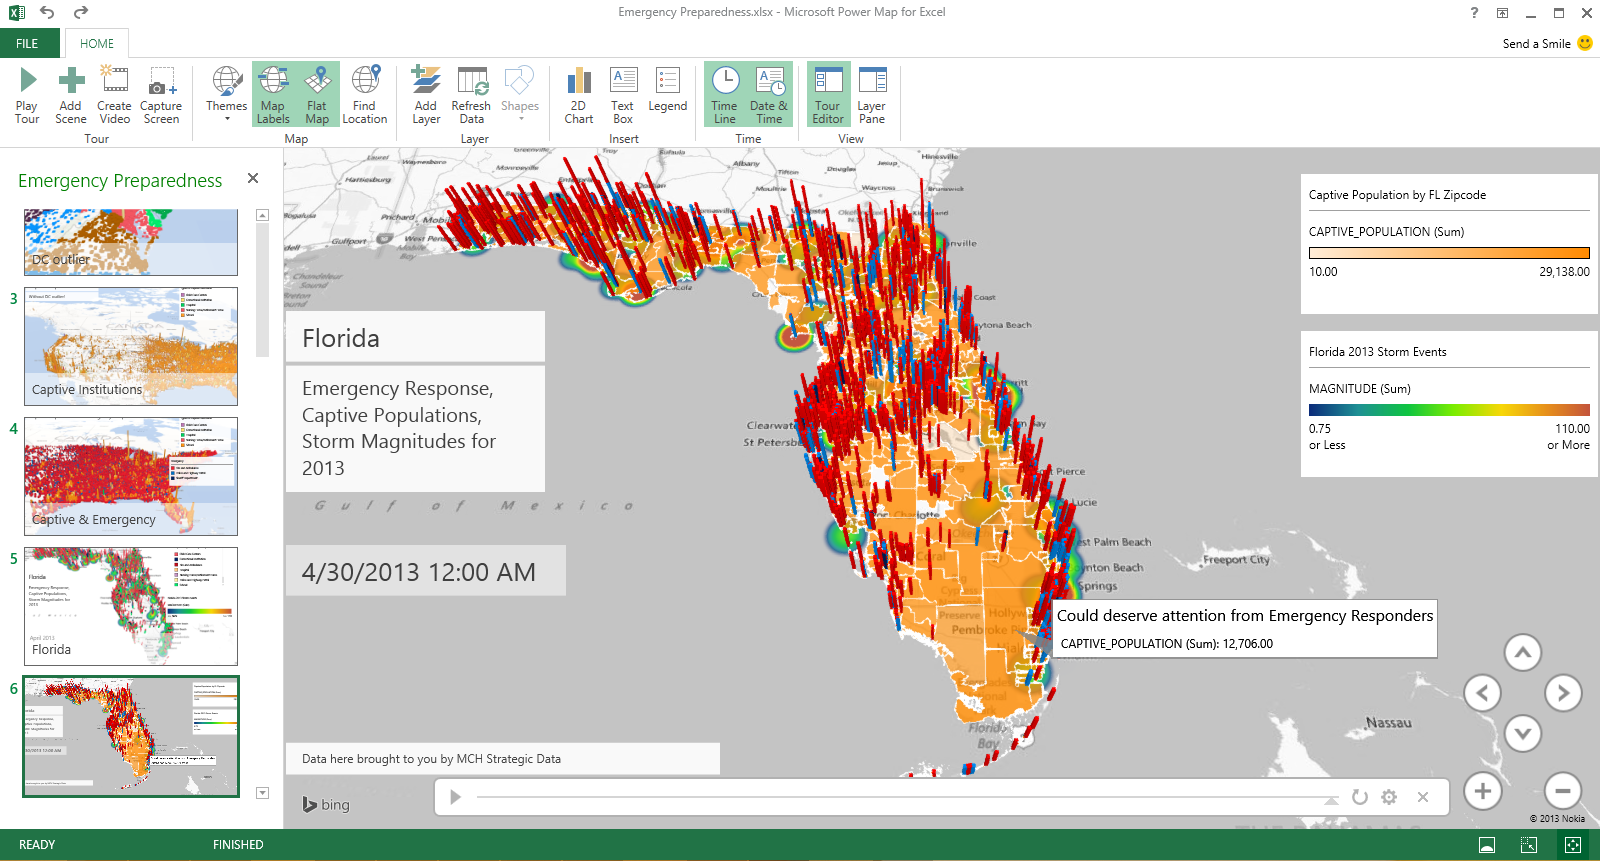 Ediblewildsus  Personable Power Map For Excel Now Generally Available Automatically Updated  With Likable Power Map For Excel Now Generally Available Automatically Updated For Office  With Amusing Excel Stop Auto Date Also Multiply Two Columns In Excel In Addition Function In Excel And Excel If And Function As Well As Excel Month Name Additionally Subscript Excel From Powerbimicrosoftcom With Ediblewildsus  Likable Power Map For Excel Now Generally Available Automatically Updated  With Amusing Power Map For Excel Now Generally Available Automatically Updated For Office  And Personable Excel Stop Auto Date Also Multiply Two Columns In Excel In Addition Function In Excel From Powerbimicrosoftcom